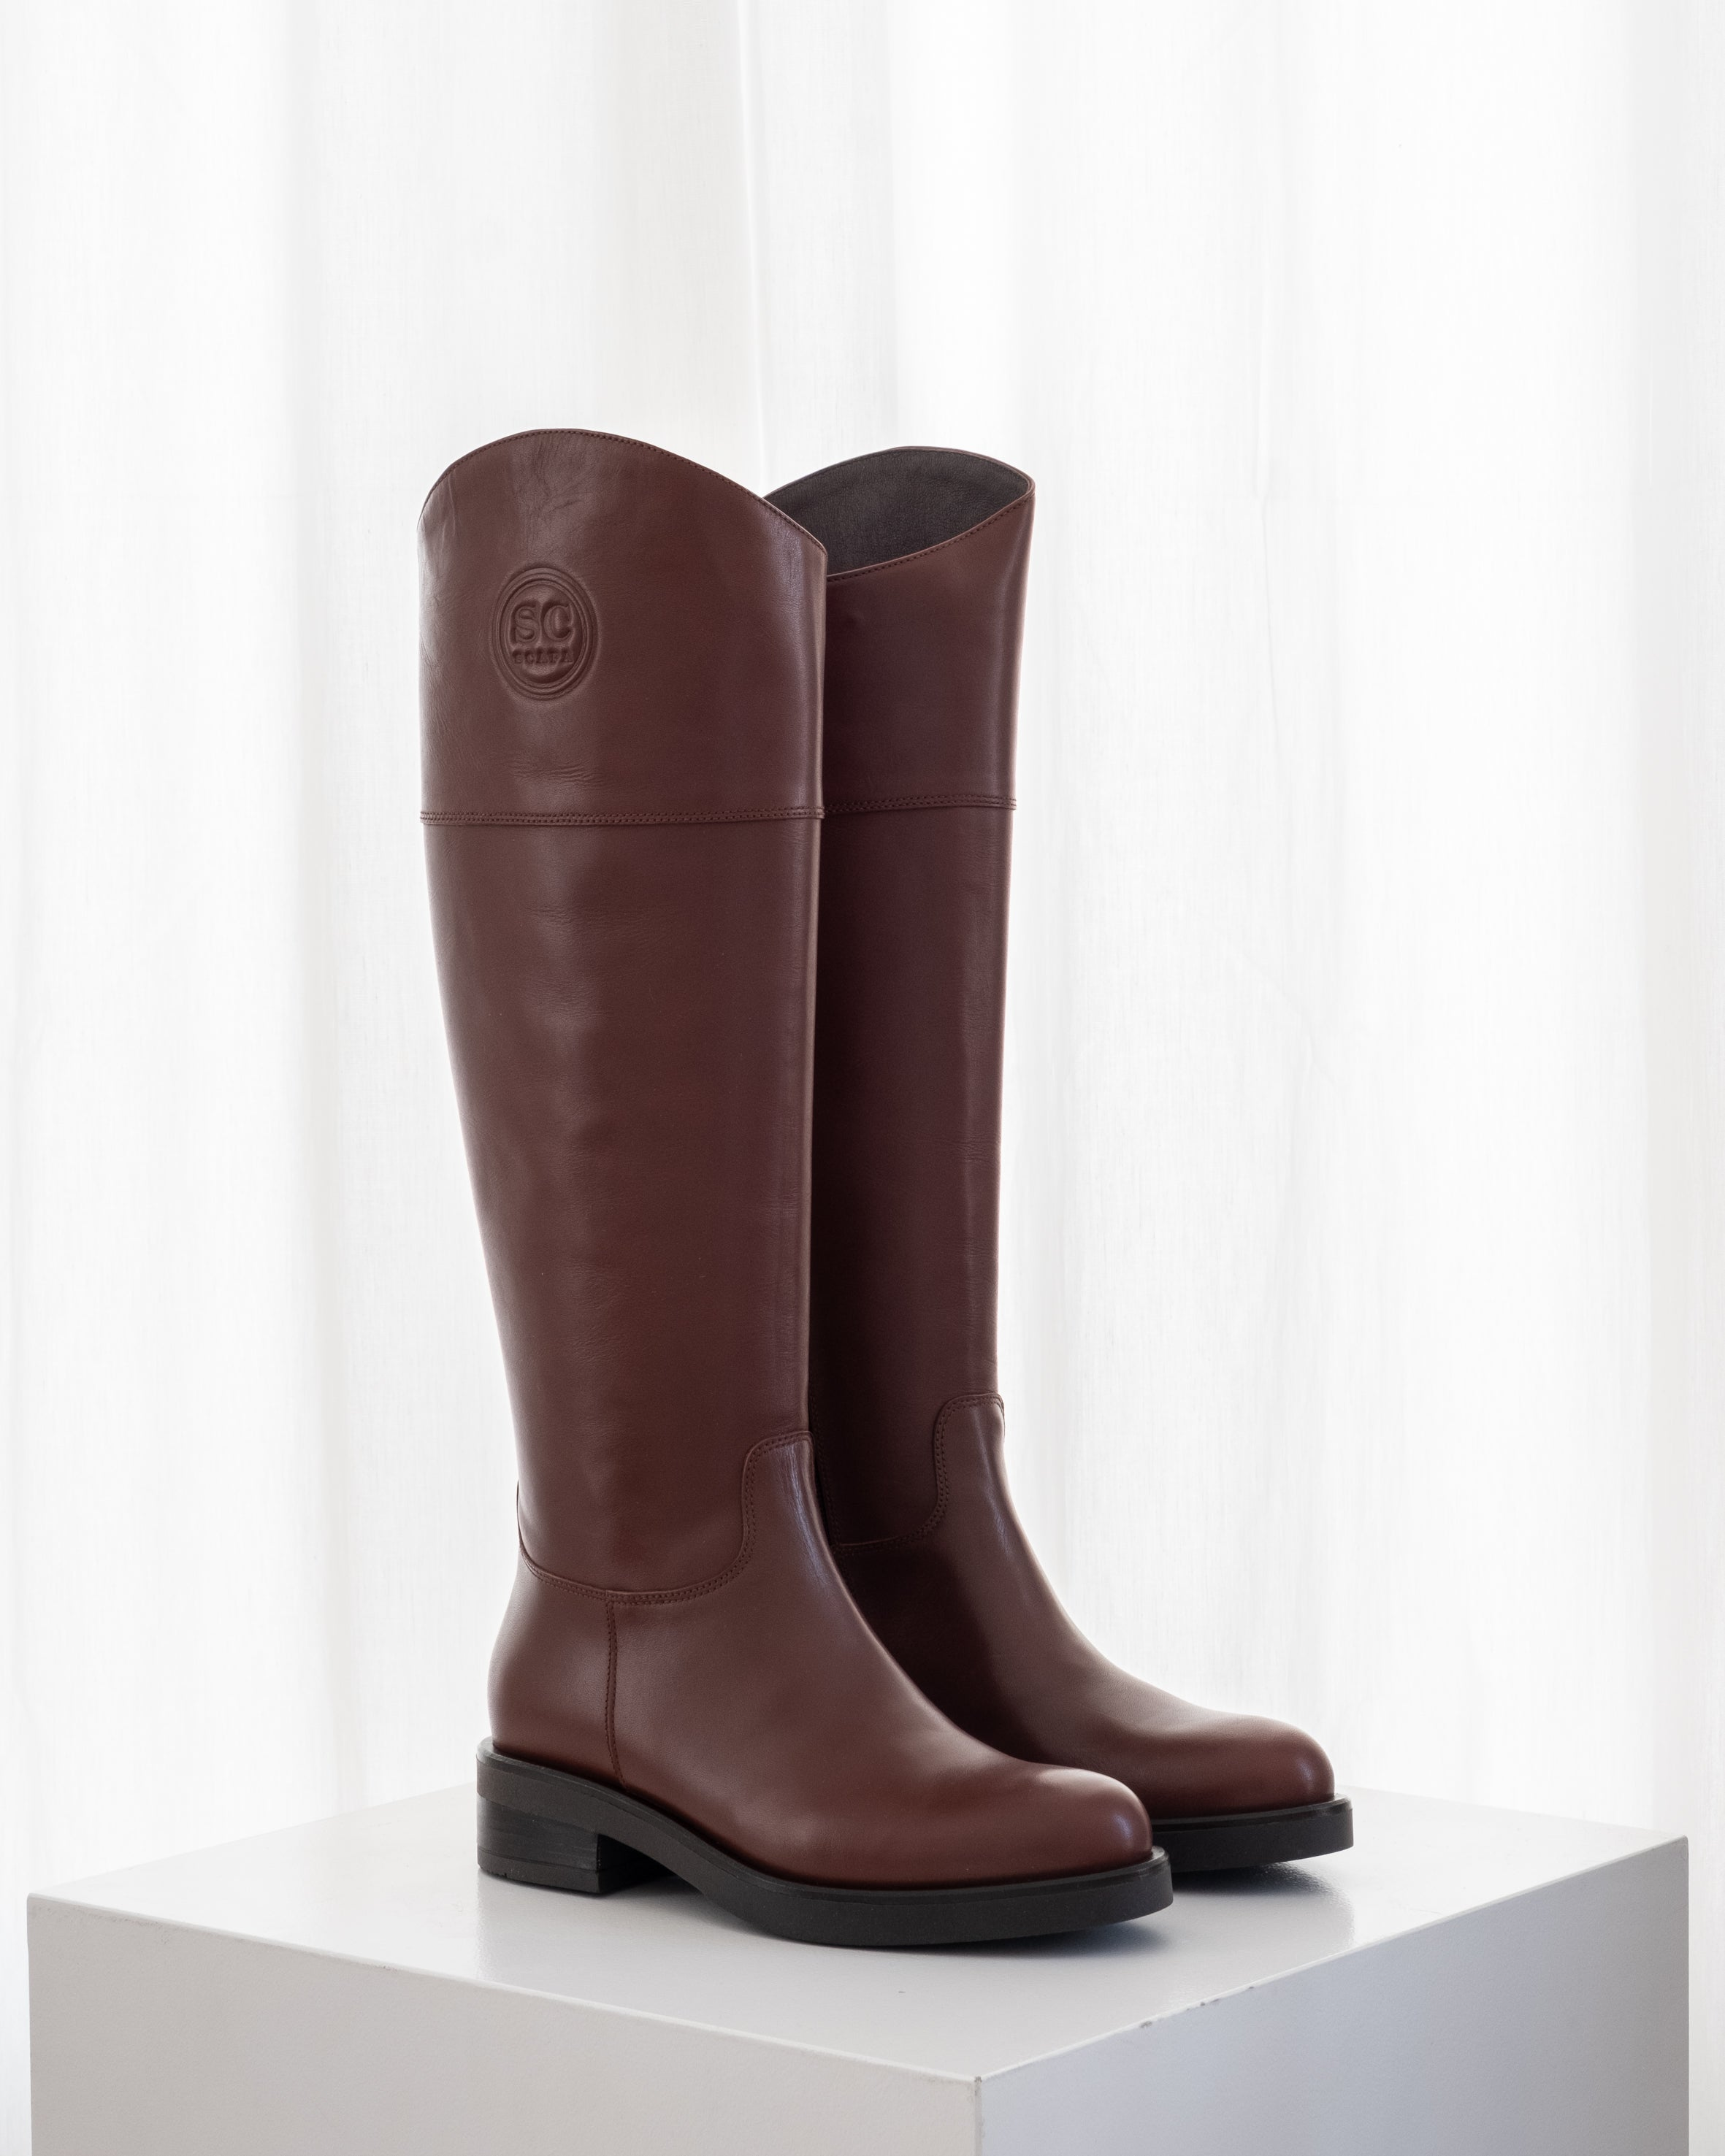 BOOT ALENTEJO - Shoes - SCAPA FASHION - SCAPA OFFICIAL